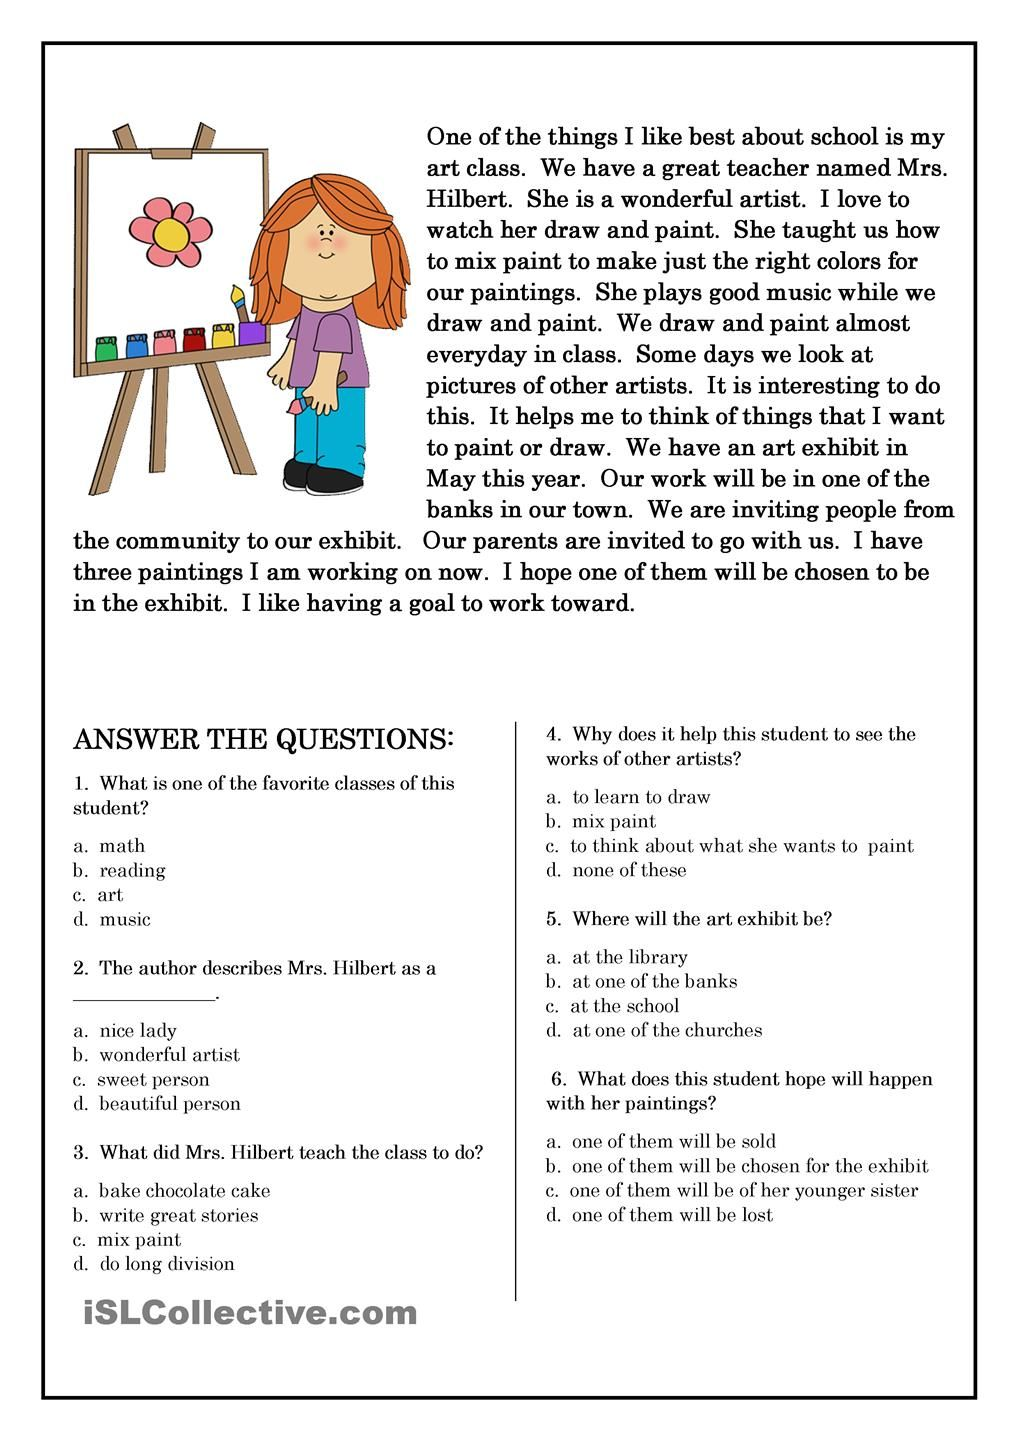 Worksheet Reading Comprehensions For Grade 5 1000 images about reading comprehension on pinterest and worksheets